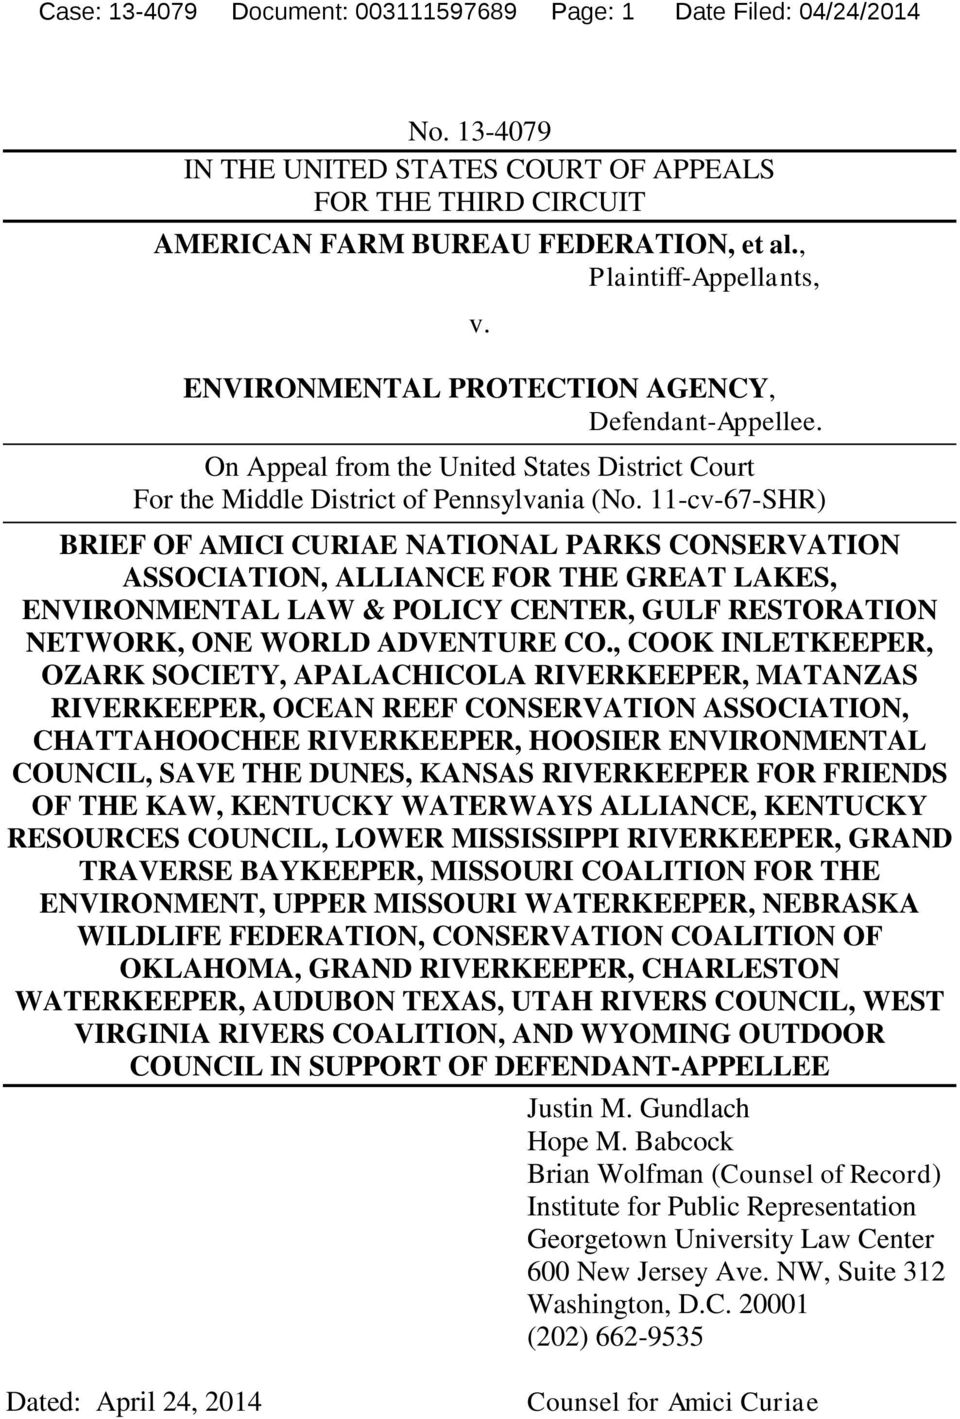 11-cv-67-SHR) BRIEF OF AMICI CURIAE NATIONAL PARKS CONSERVATION ASSOCIATION, ALLIANCE FOR THE GREAT LAKES, ENVIRONMENTAL LAW & POLICY CENTER, GULF RESTORATION NETWORK, ONE WORLD ADVENTURE CO.